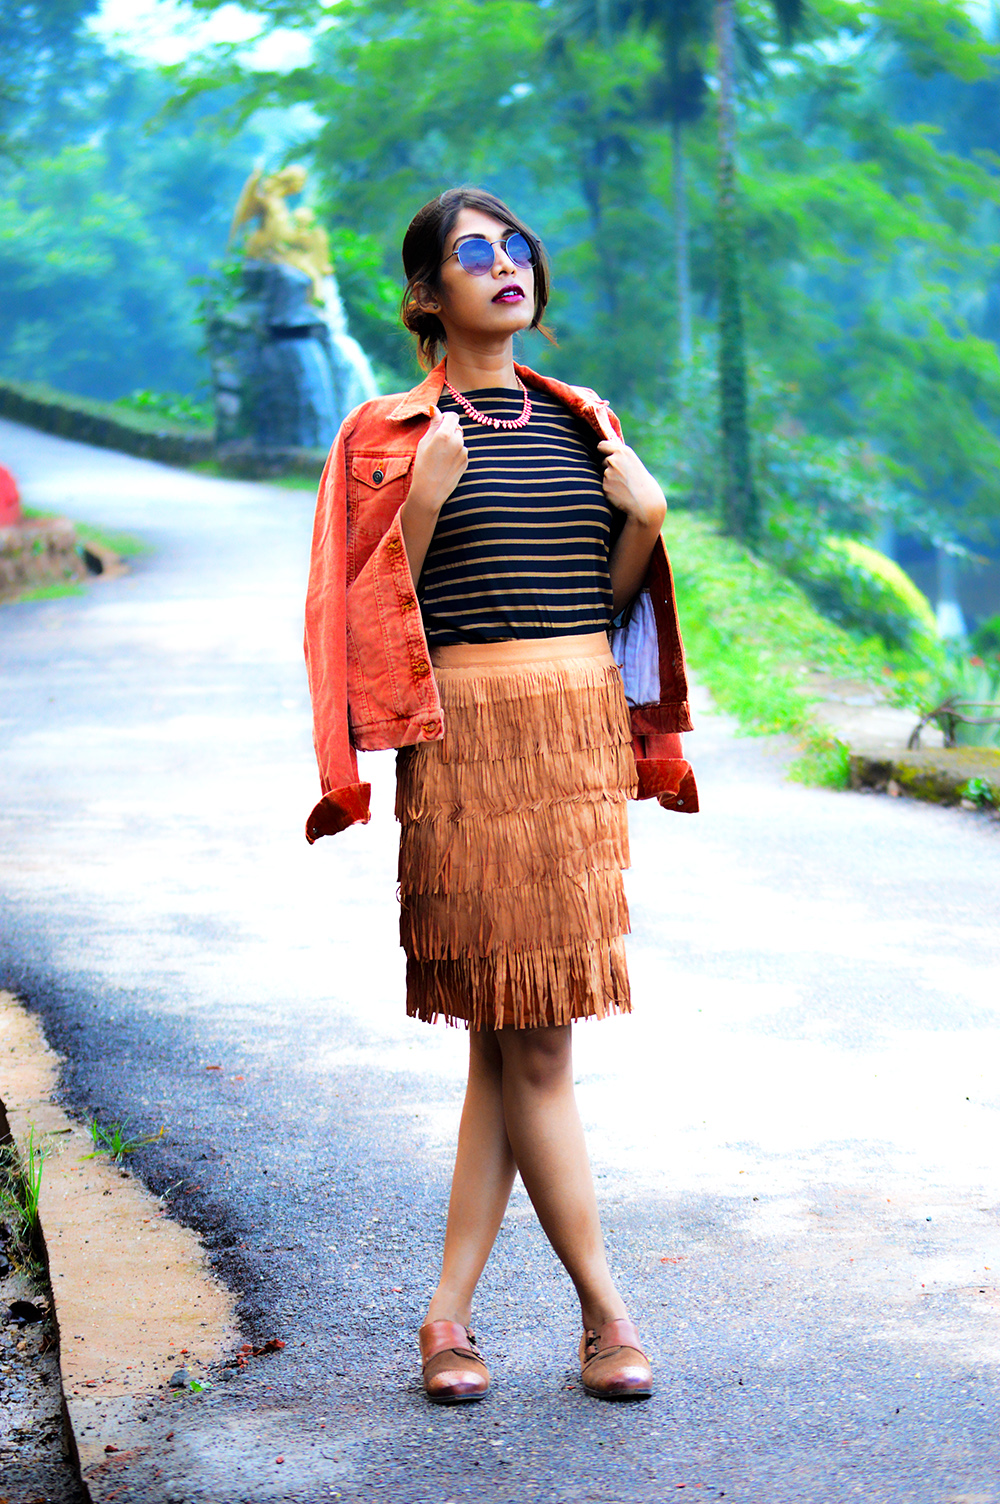 fashion, style, street style, street fashion, sarmistha goswami, style over coffee, pankaj jyoti barua, fashion blogger, indian fashion blogger, summer fashion, indian street style photography, fringe skirt, corduroy jacket, striped tee, lenskart sunglasses, Summer Street Style-1